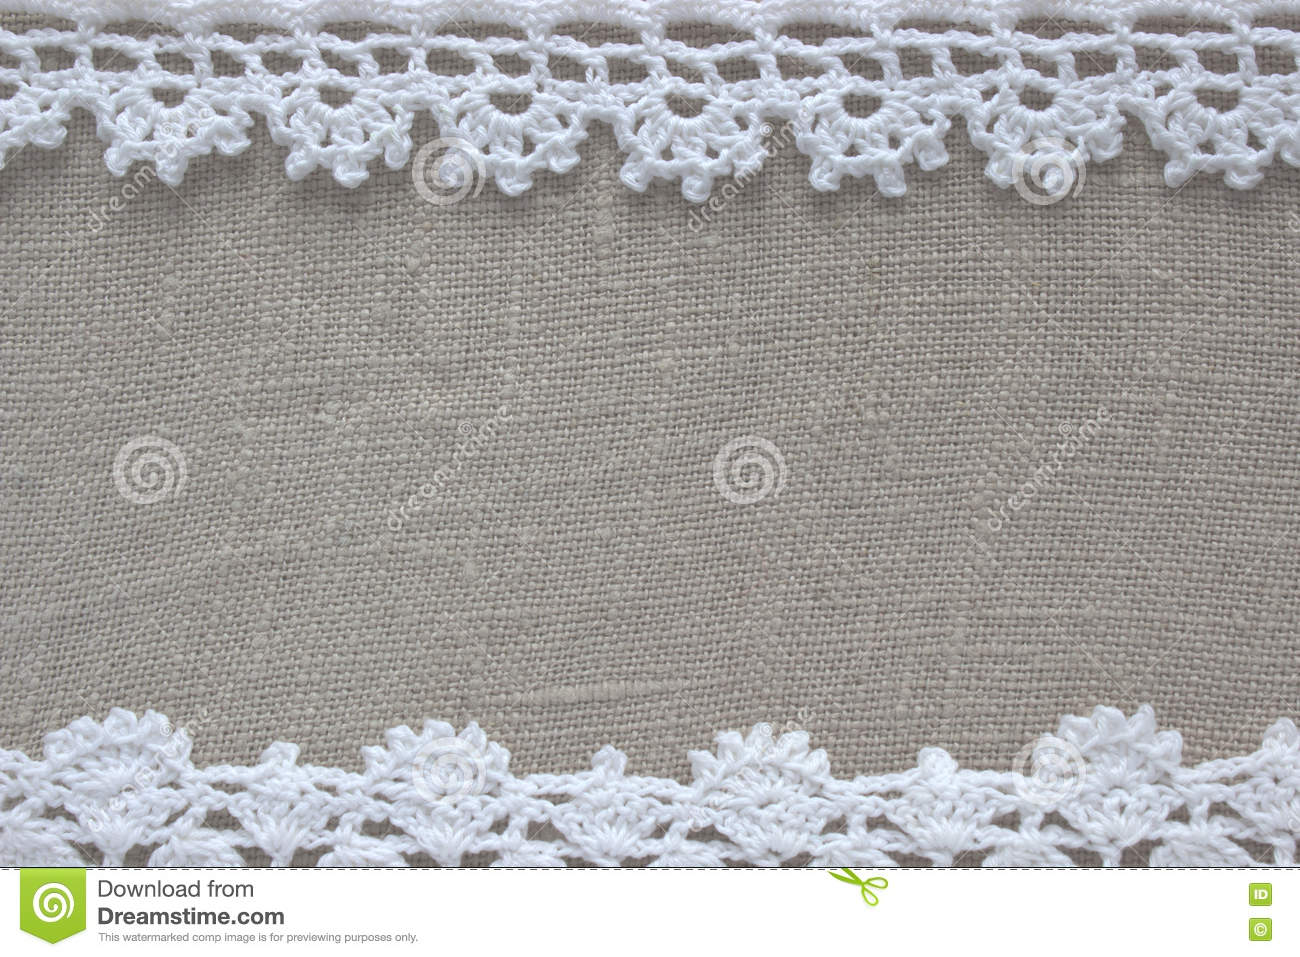 Crochet Pattern, Homemade Lace, Nice Wedding Background. Knitted ...